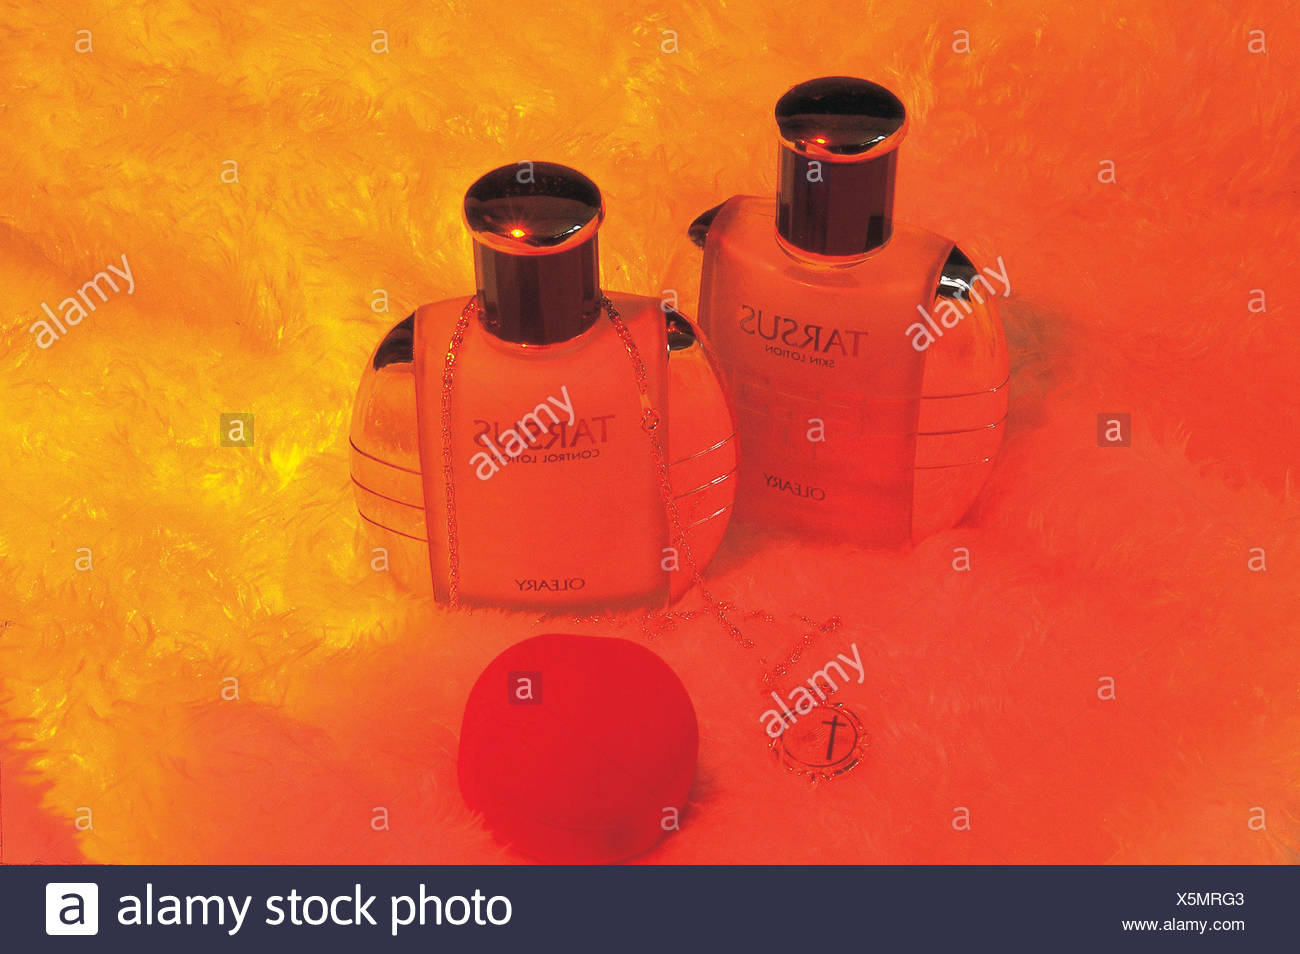 Toiletry,Cosmetics,Personal Accessory,Knick Knack, - Stock Image